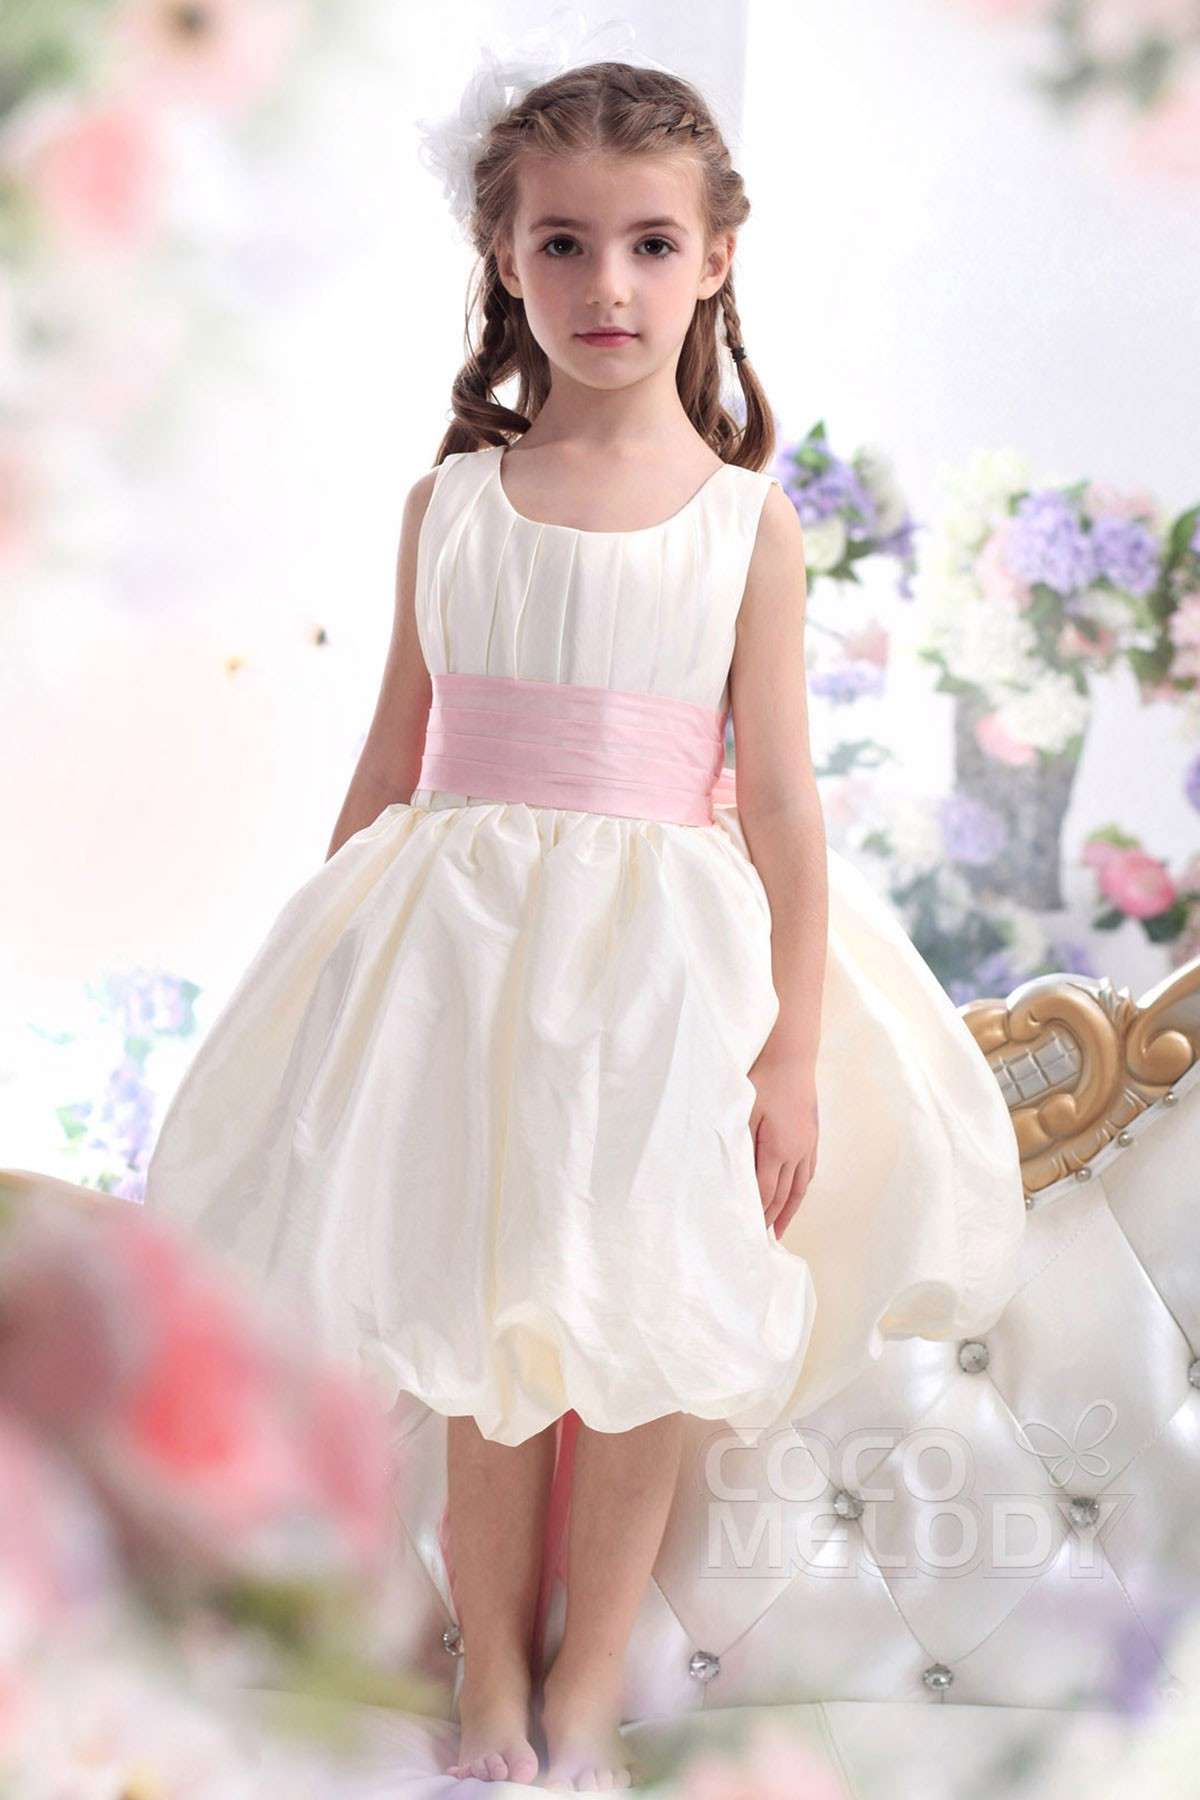 Ball Gown Tea Length Taffeta Flower Girl Dress CKZK13004 | Cocomelody